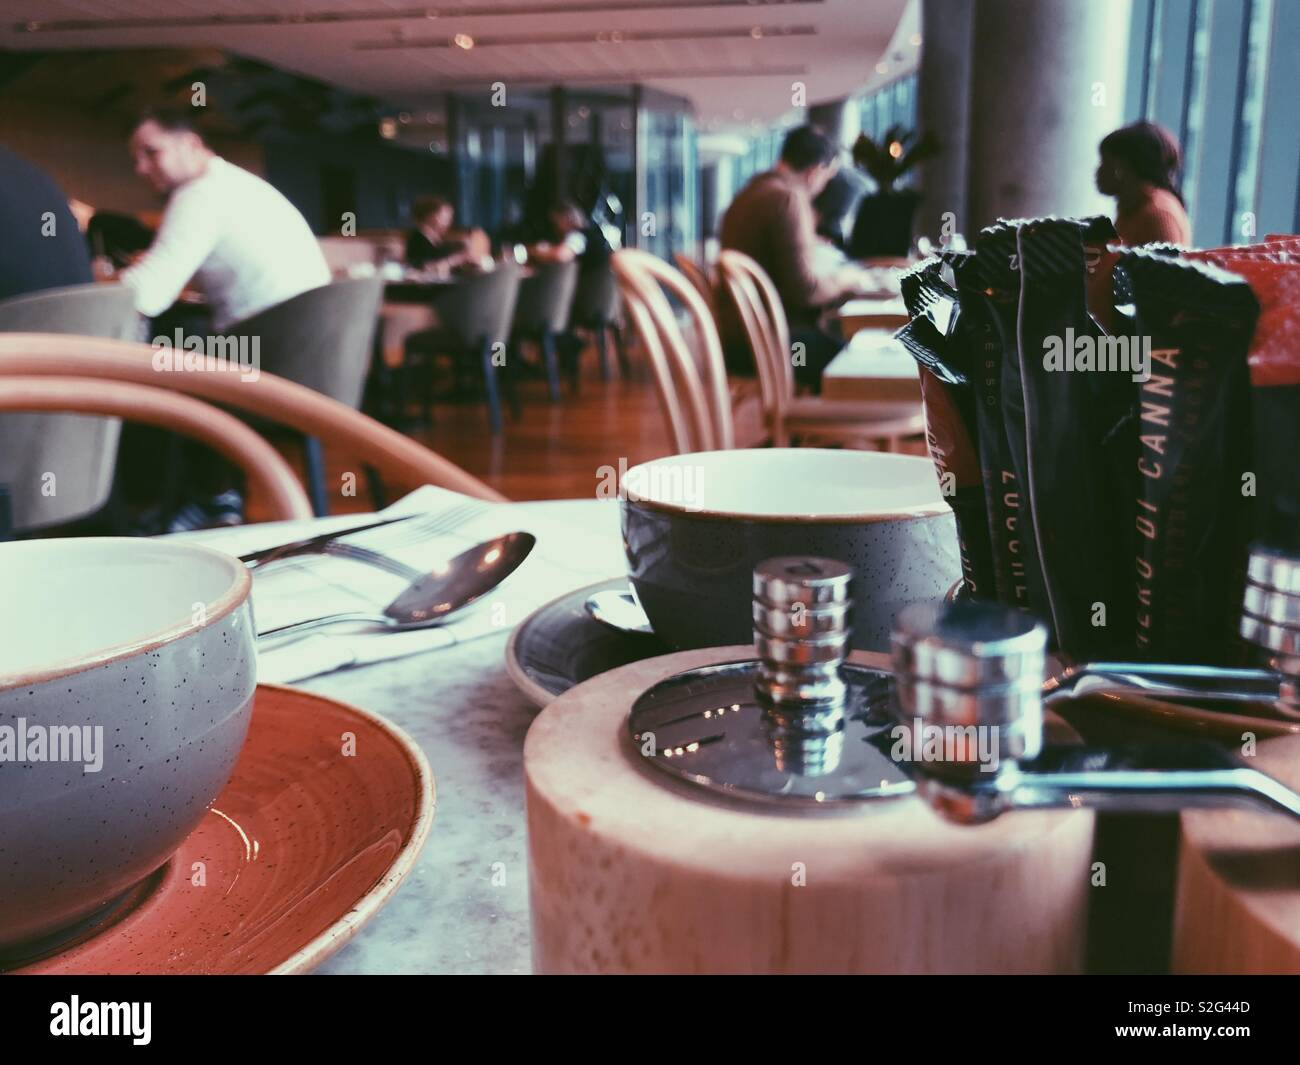 View from table of people sitting at buffet break tables in a typical UK hotel. - Stock Image